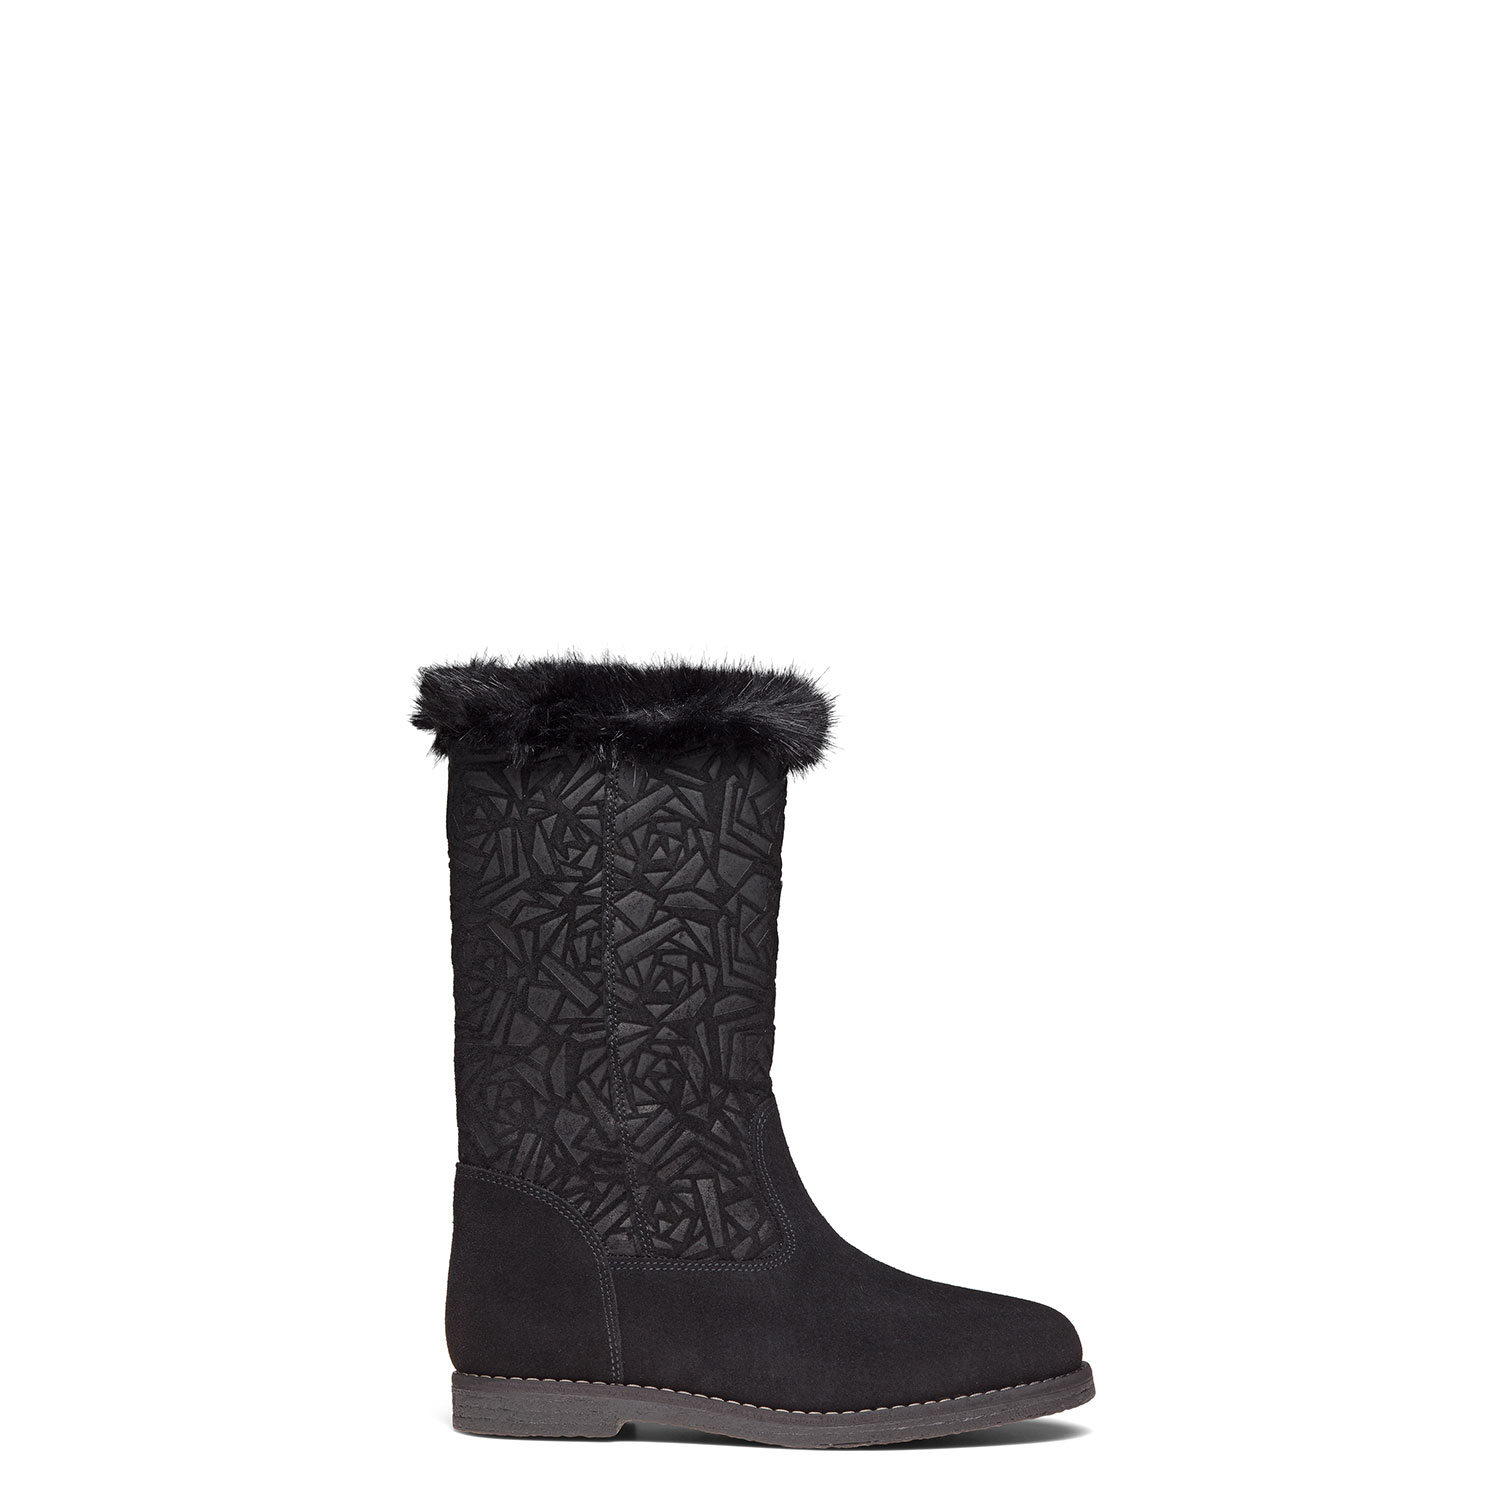 Women's fur-lined mid-calf boots CARLO PAZOLINI SW-SNW4-1